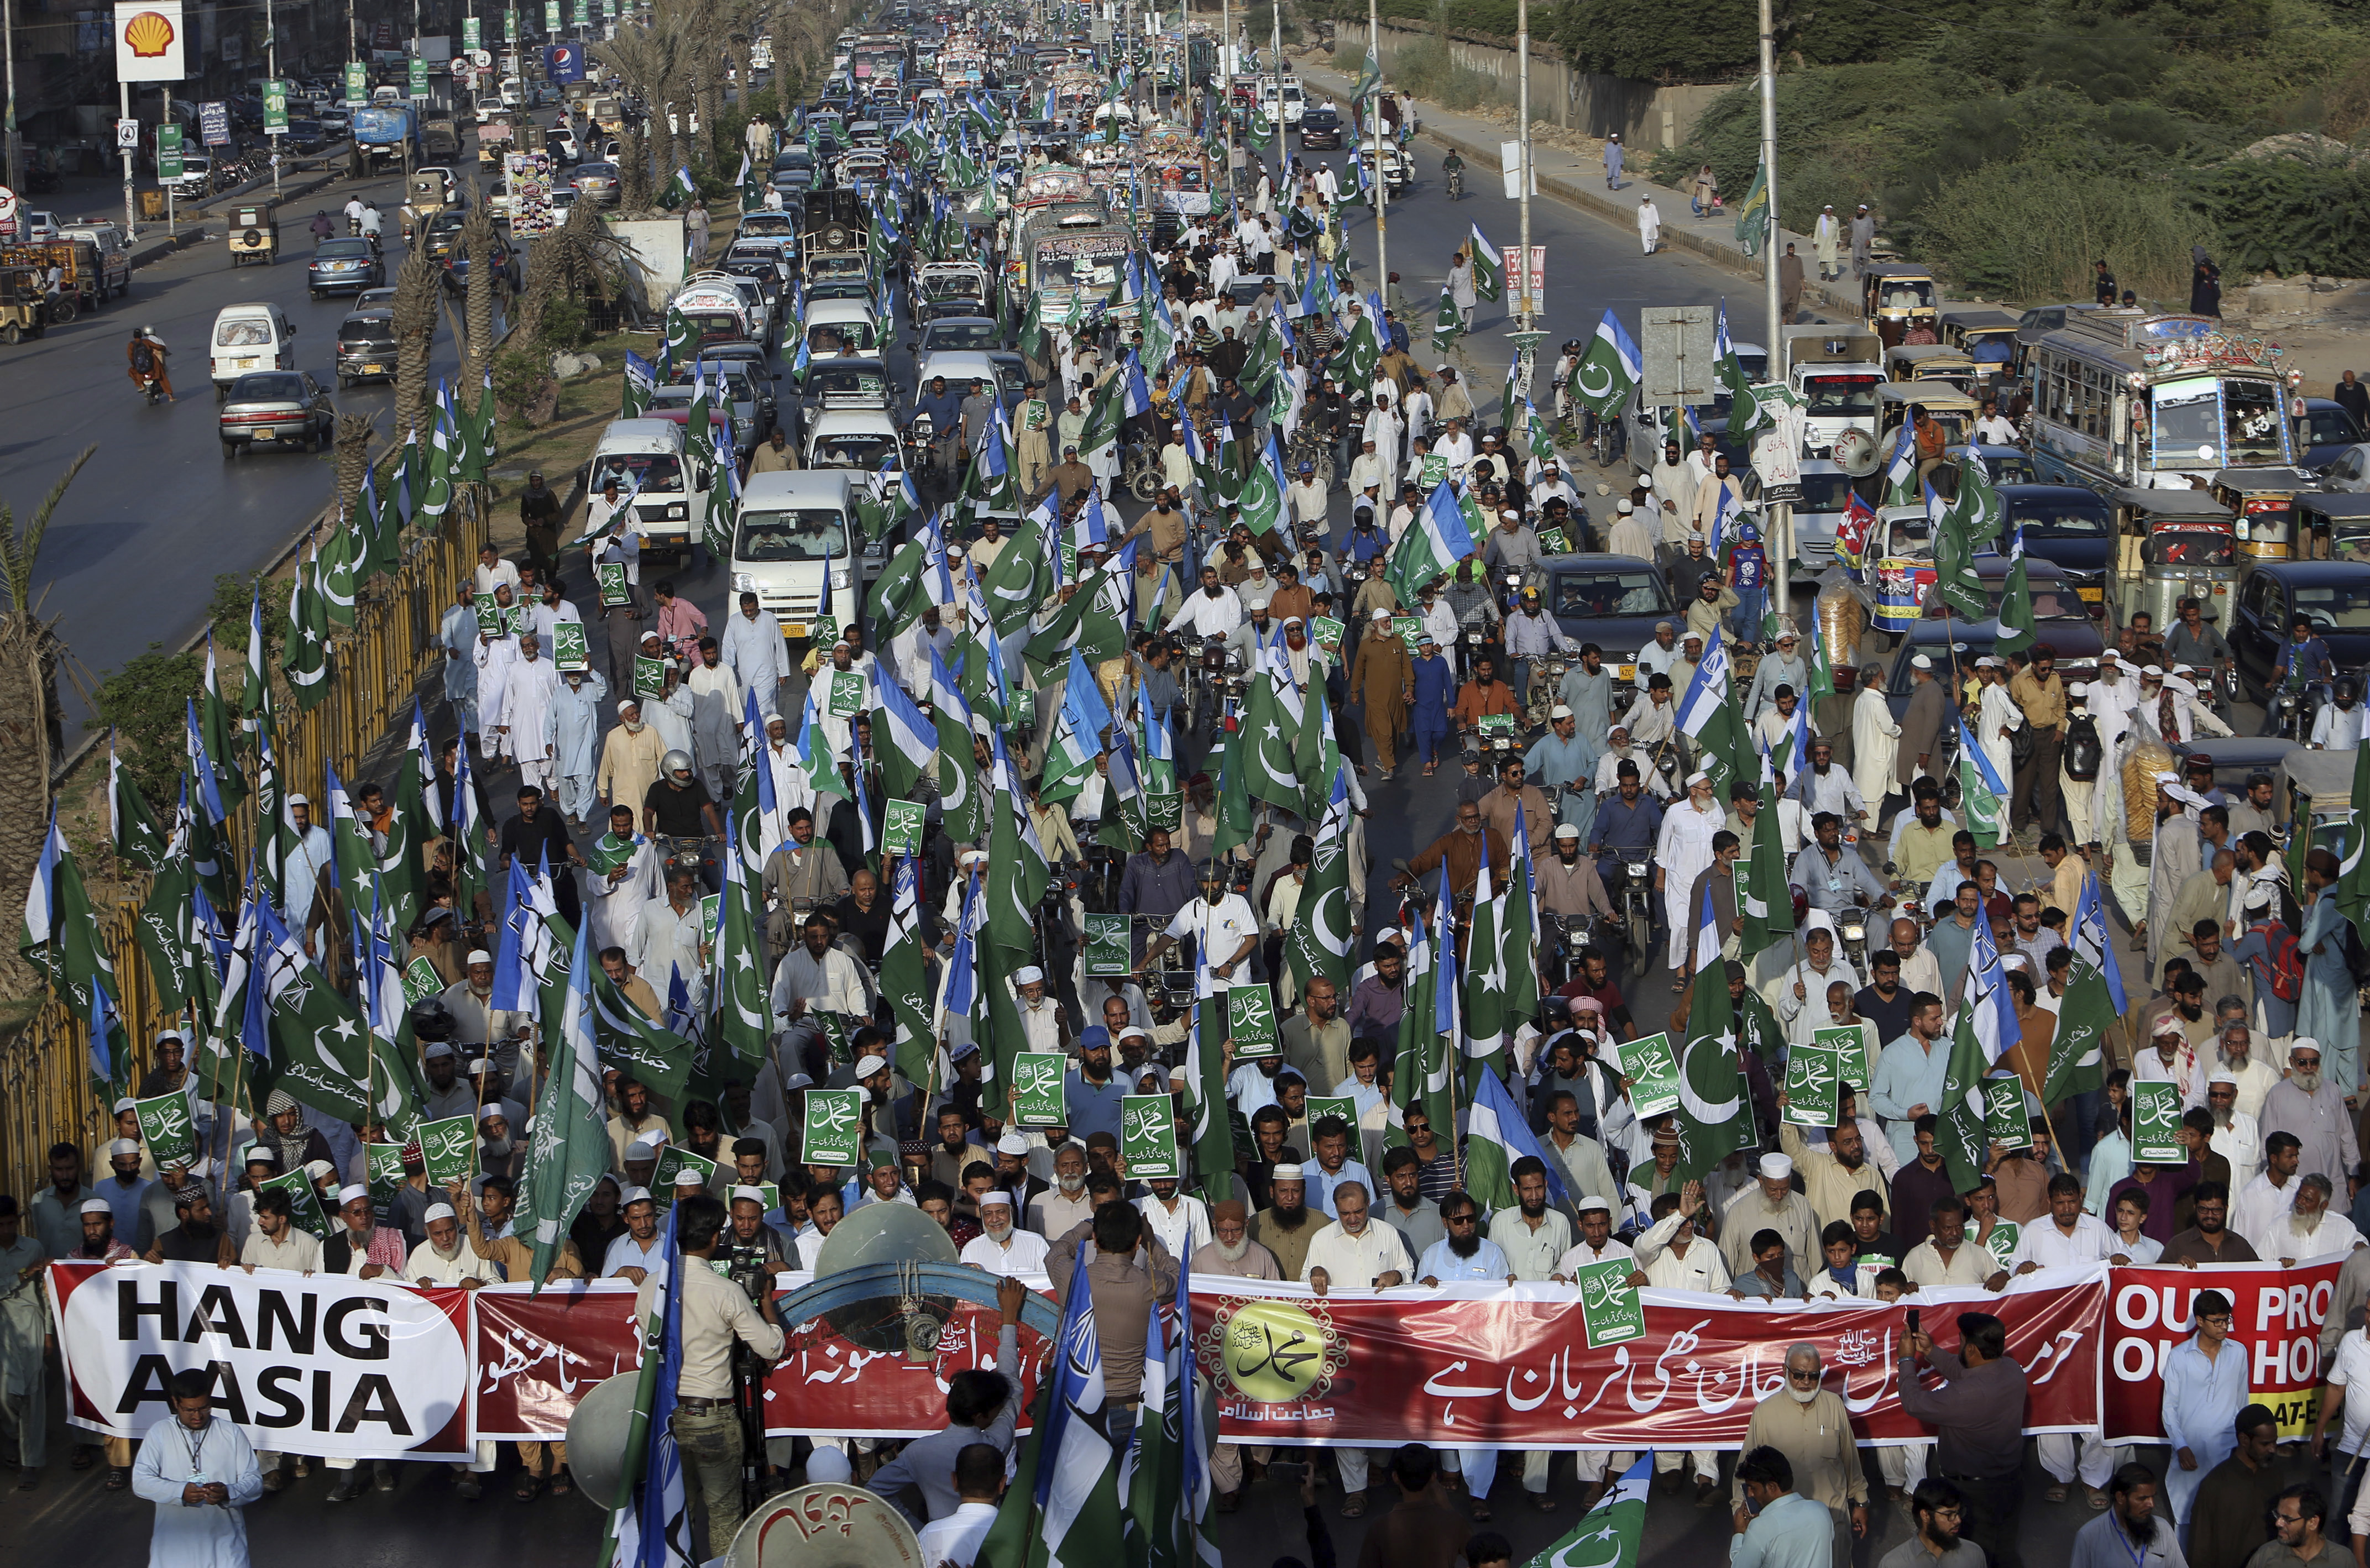 FILE - In this Nov. 4, 2018, file photo, supporters of Jamaat-i-Islami, a Pakistani Islamist party, participate in a rally to condemn a Supreme Court decision that acquitted a Christian woman, in Karachi, Pakistan. Aasia Bibi, Christian woman acquitted after eight years on death row for blasphemy was released but her whereabouts in Islamabad on Thursday remained a closely guarded secret in the wake of demands by radical Islamists that she be publicly executed. (AP Photo/Fareed Khan)